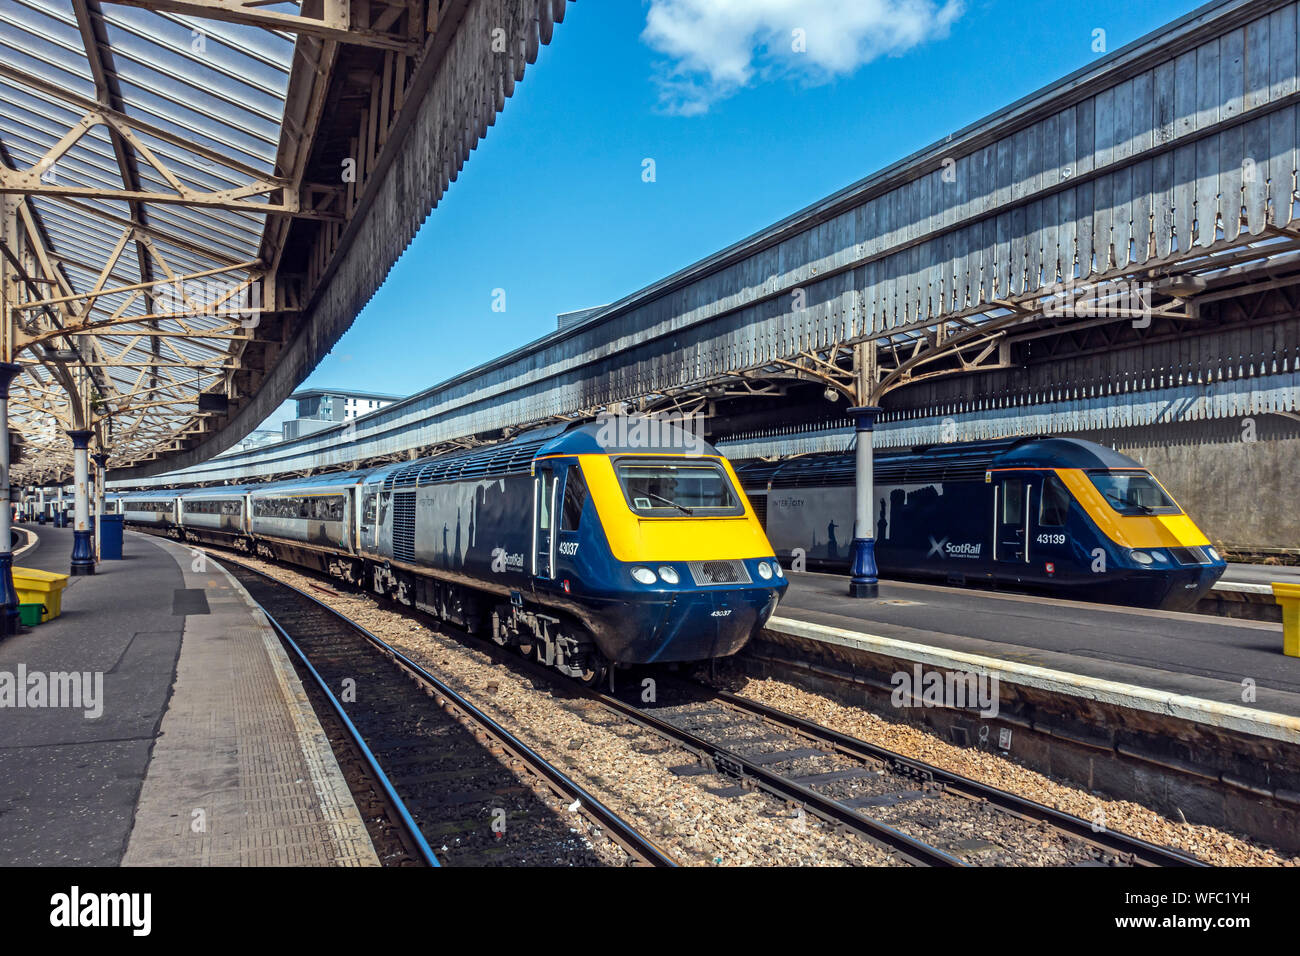 two-abellio-scotrail-high-speed-trains-at-platforms-in-aberdeen-railway-station-aberdeen-scotland-uk-destined-for-edinburgh-and-glasgow-WFC1YH.jpg?profile=RESIZE_400x